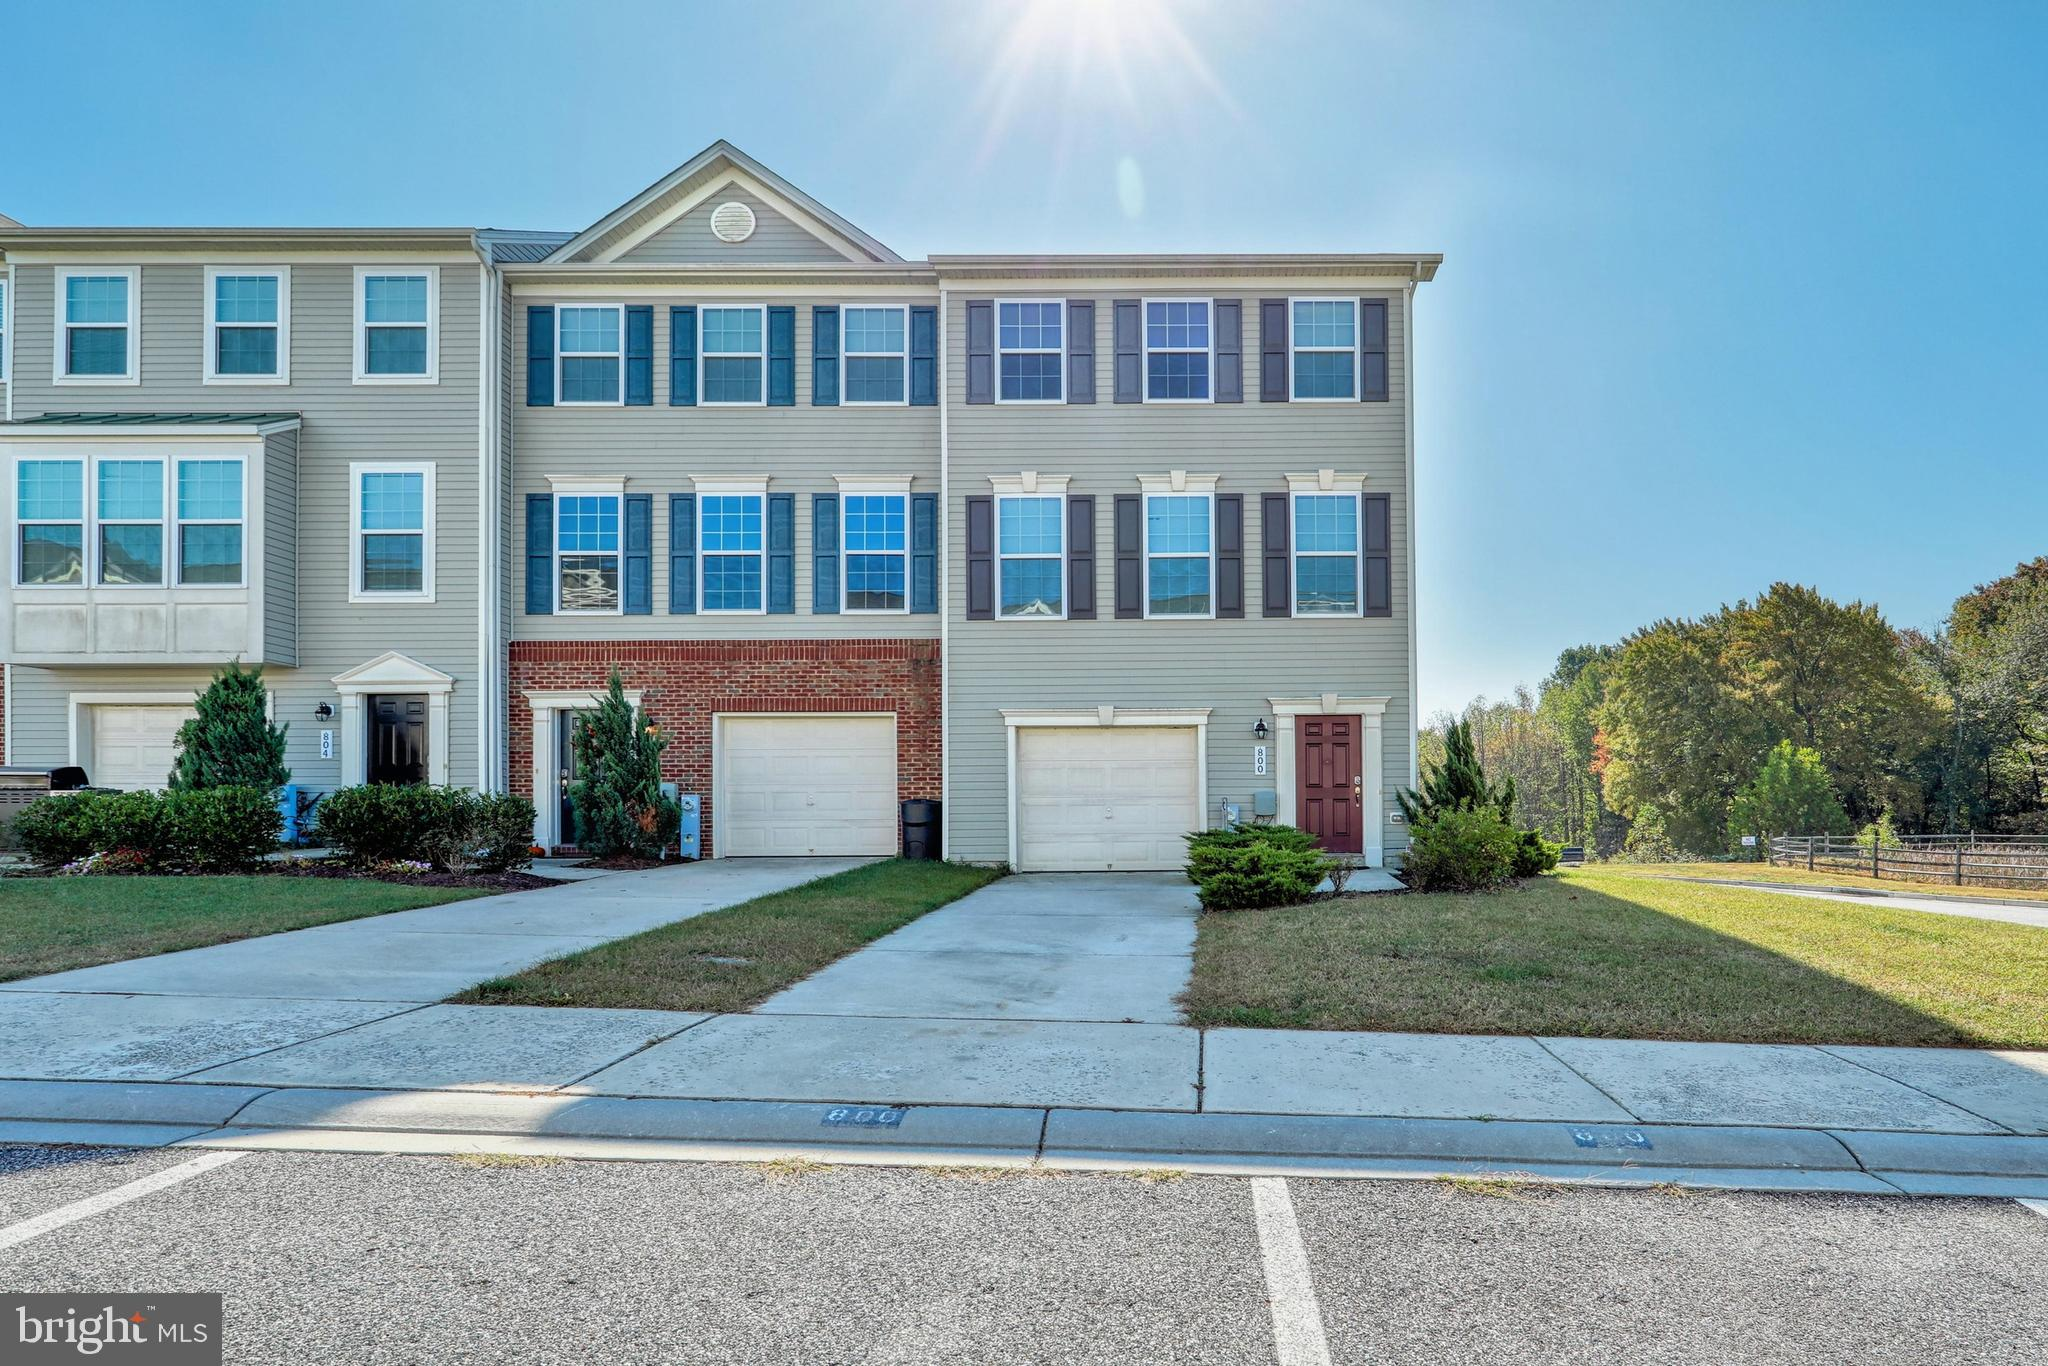 Move-in ready end of group featuring: Open kitchen/dining, kitchen island, stainless steel applaince